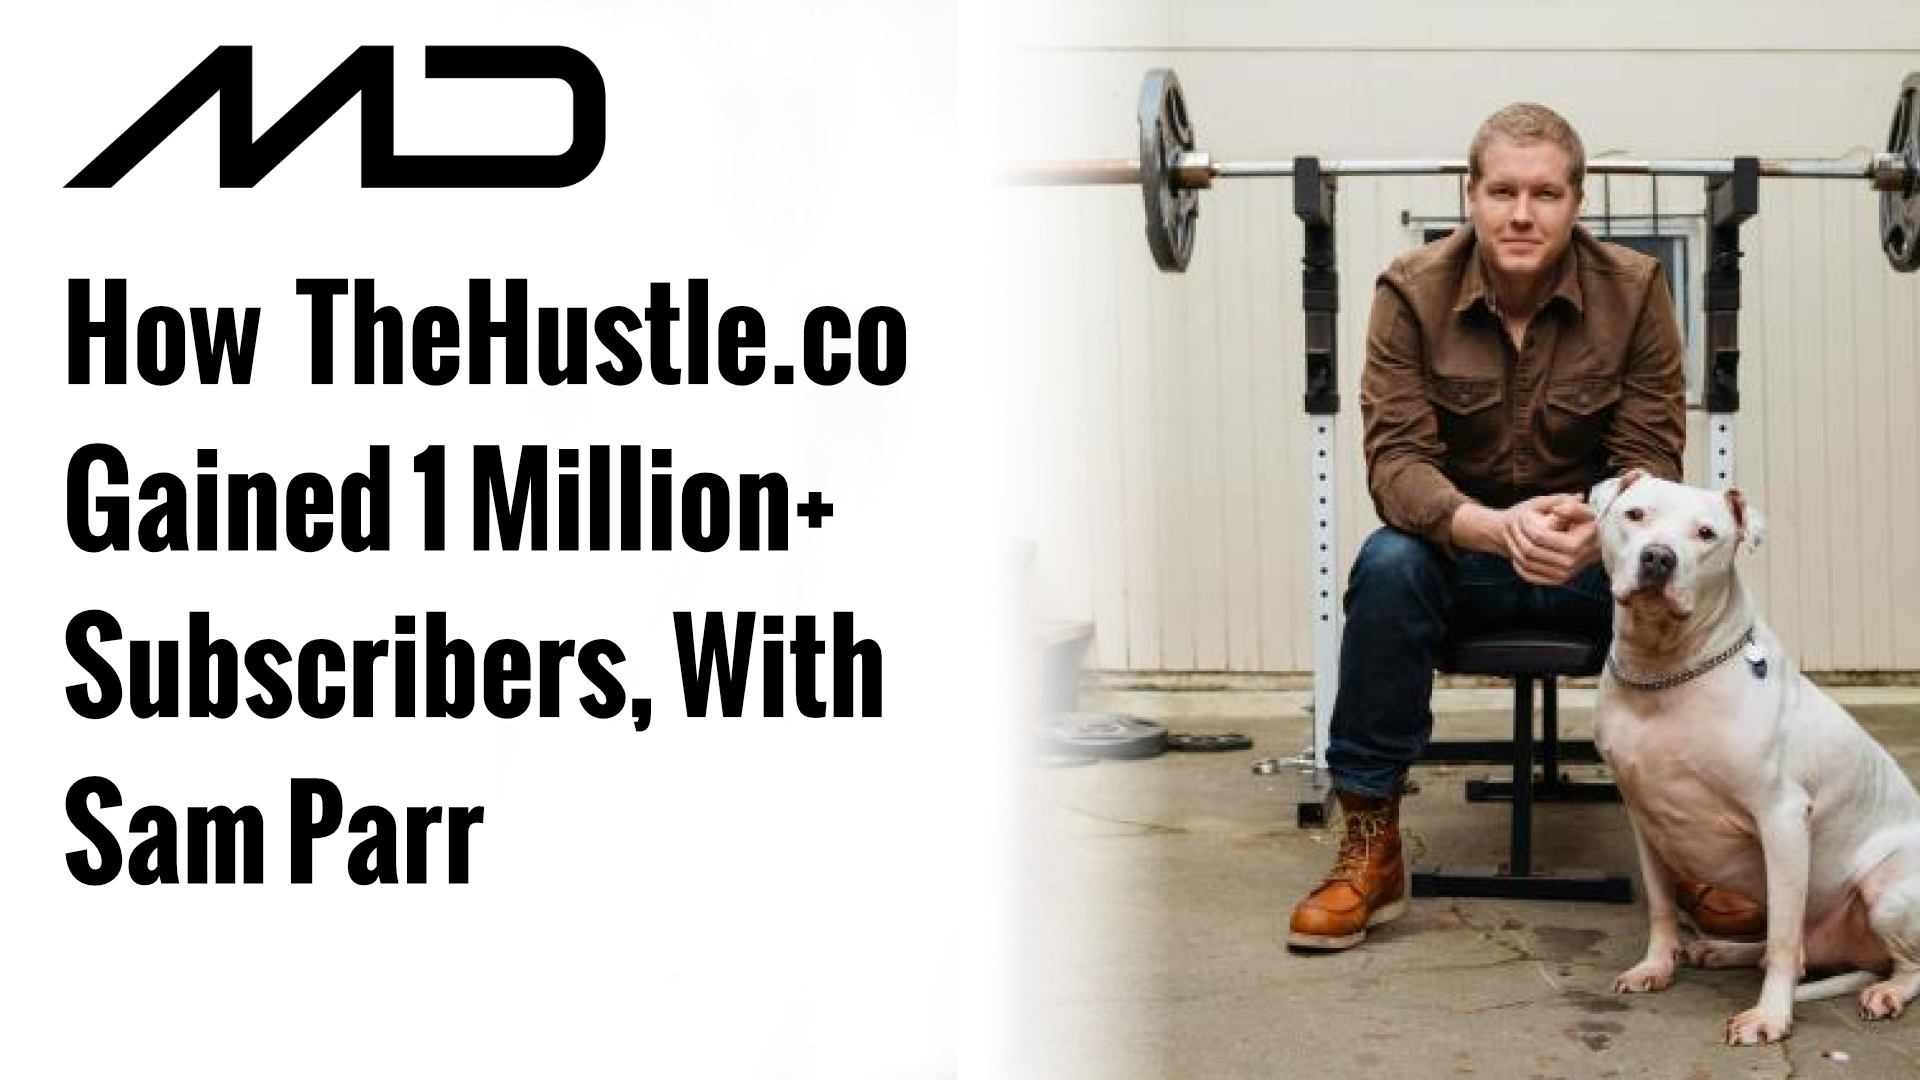 How TheHustle.co Gained 1 Million+ Subscribers, With Sam Parr | Mike Dillard